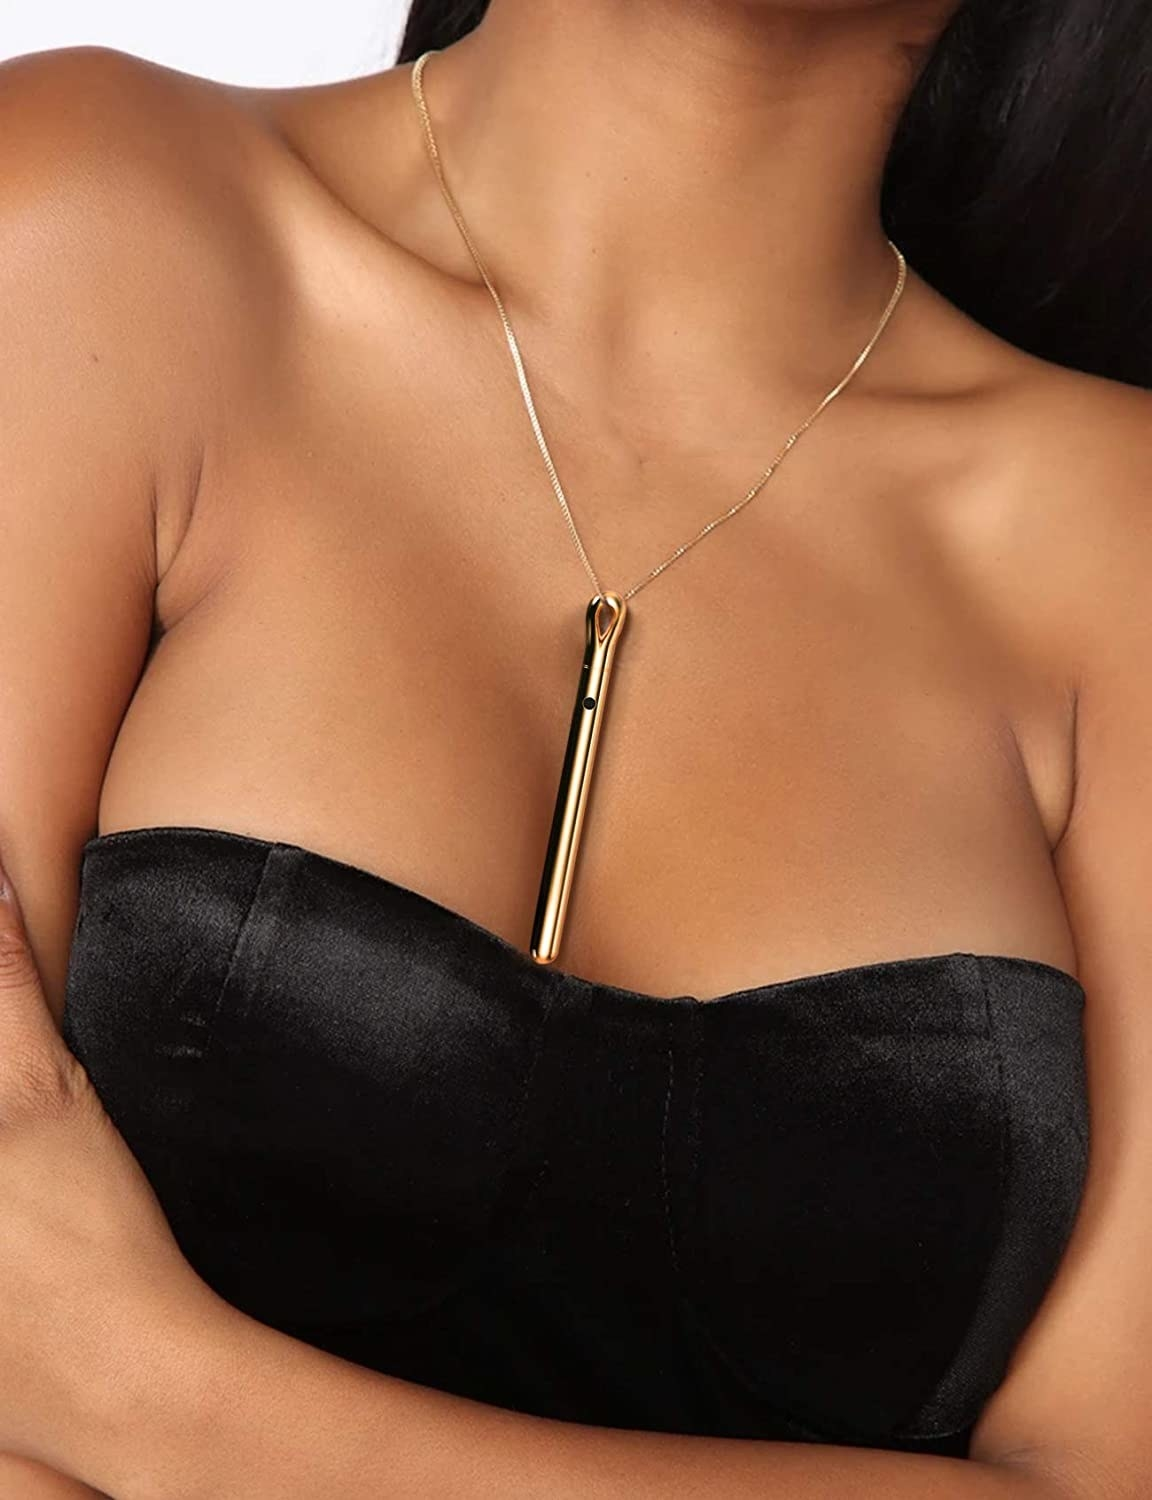 close up of the Long Gold Plated vibrator necklace hanging from a model's neck